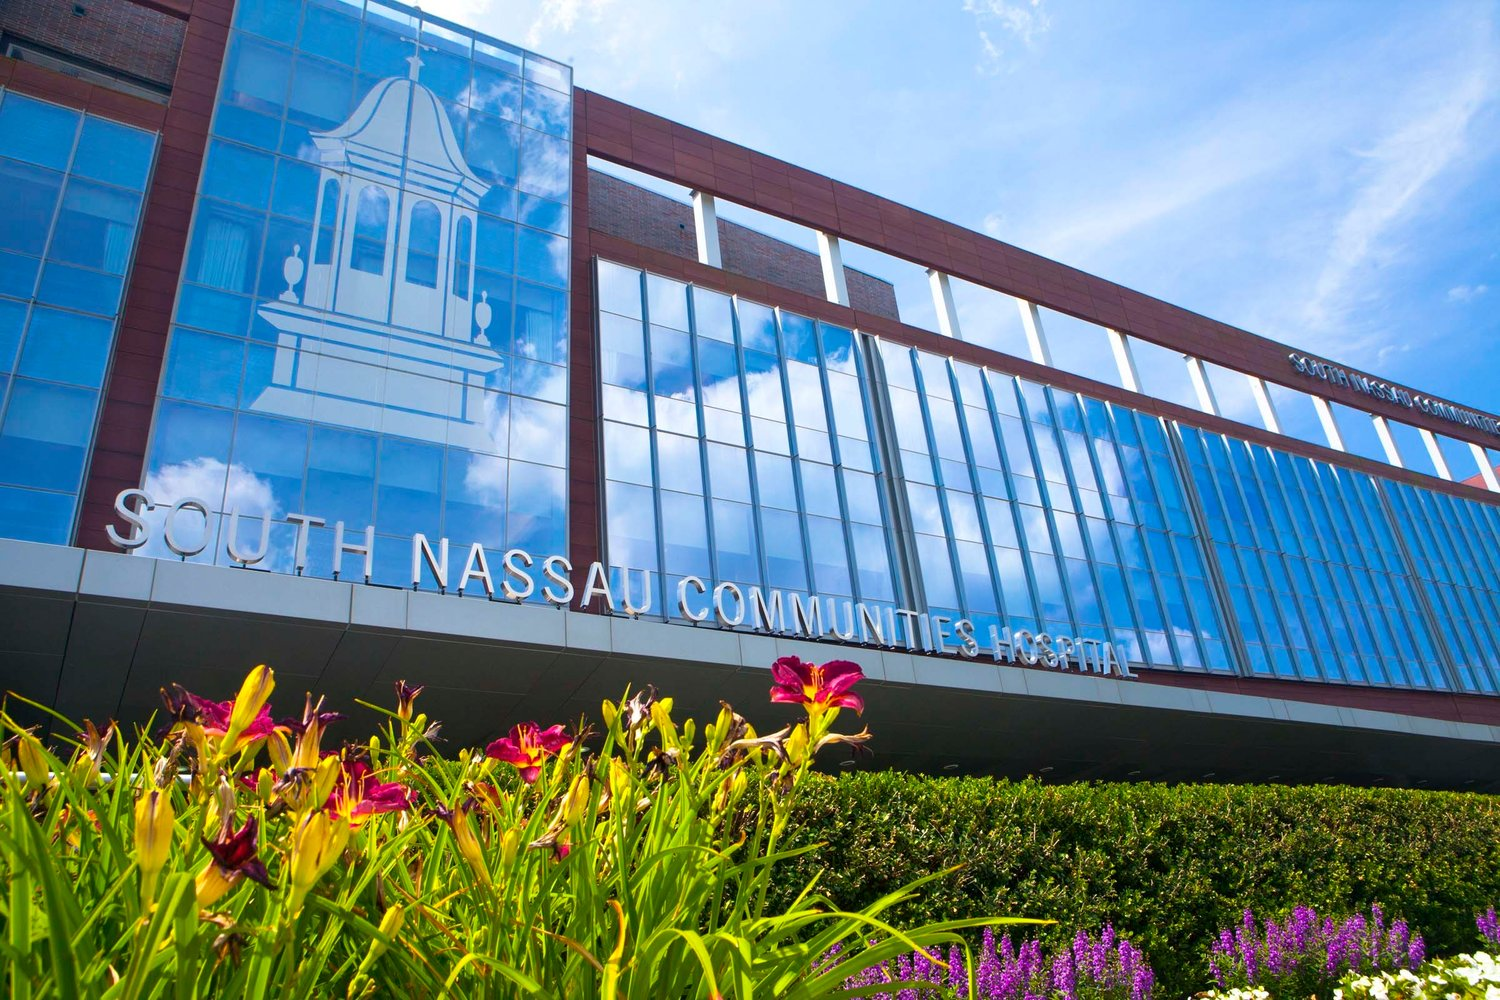 South Nassau Communities Hospital's Center for Breast Health has had its national accreditation since 2013.